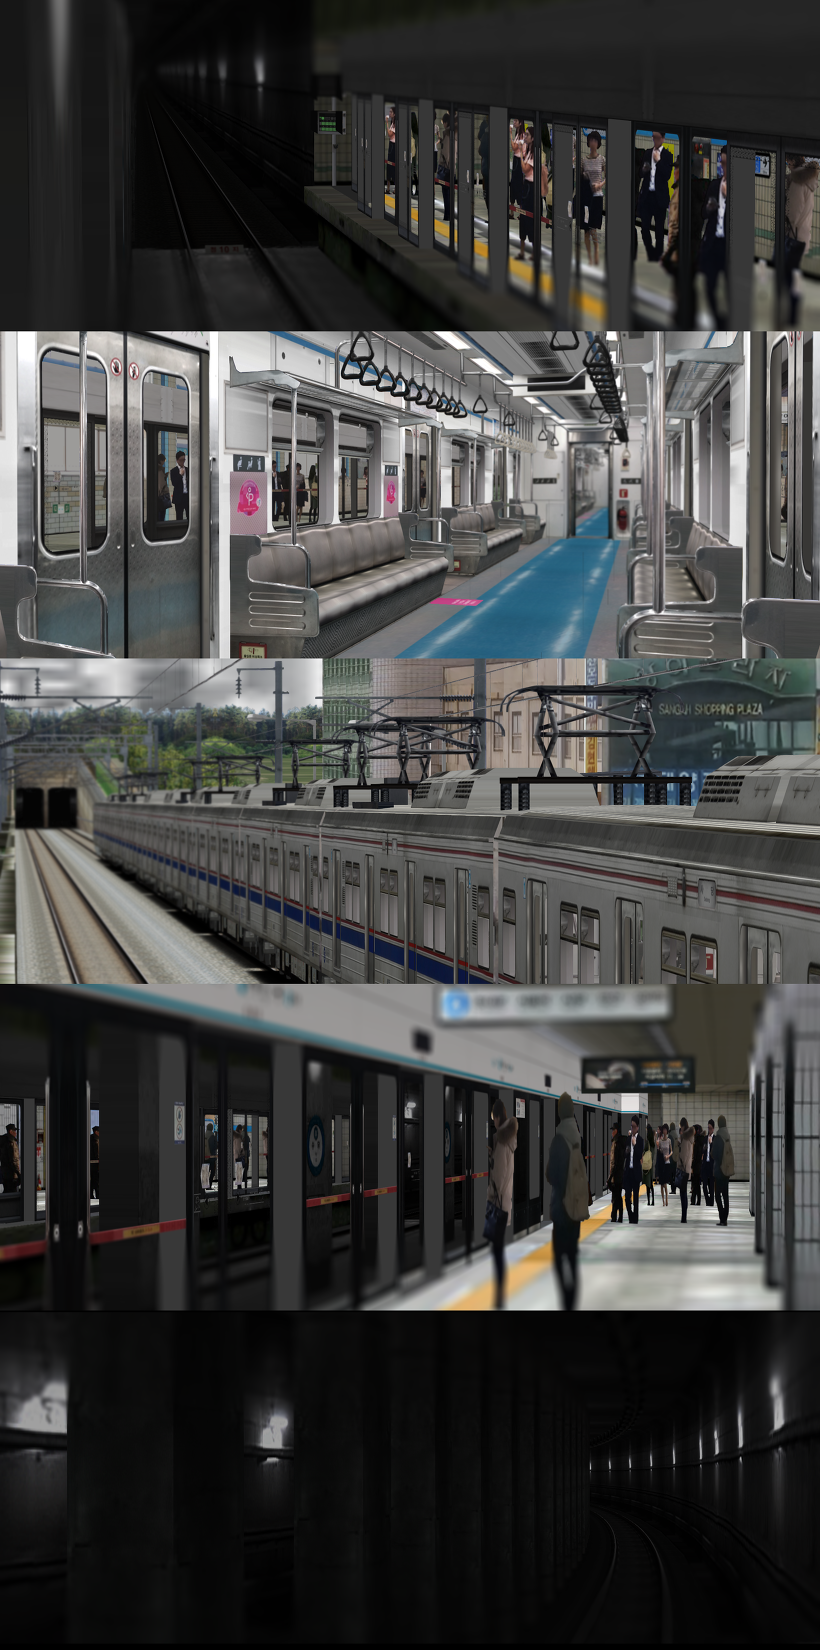 OpenBVE/Hmmsim1, 2] Seoul Subway Line 4(412-416) Download